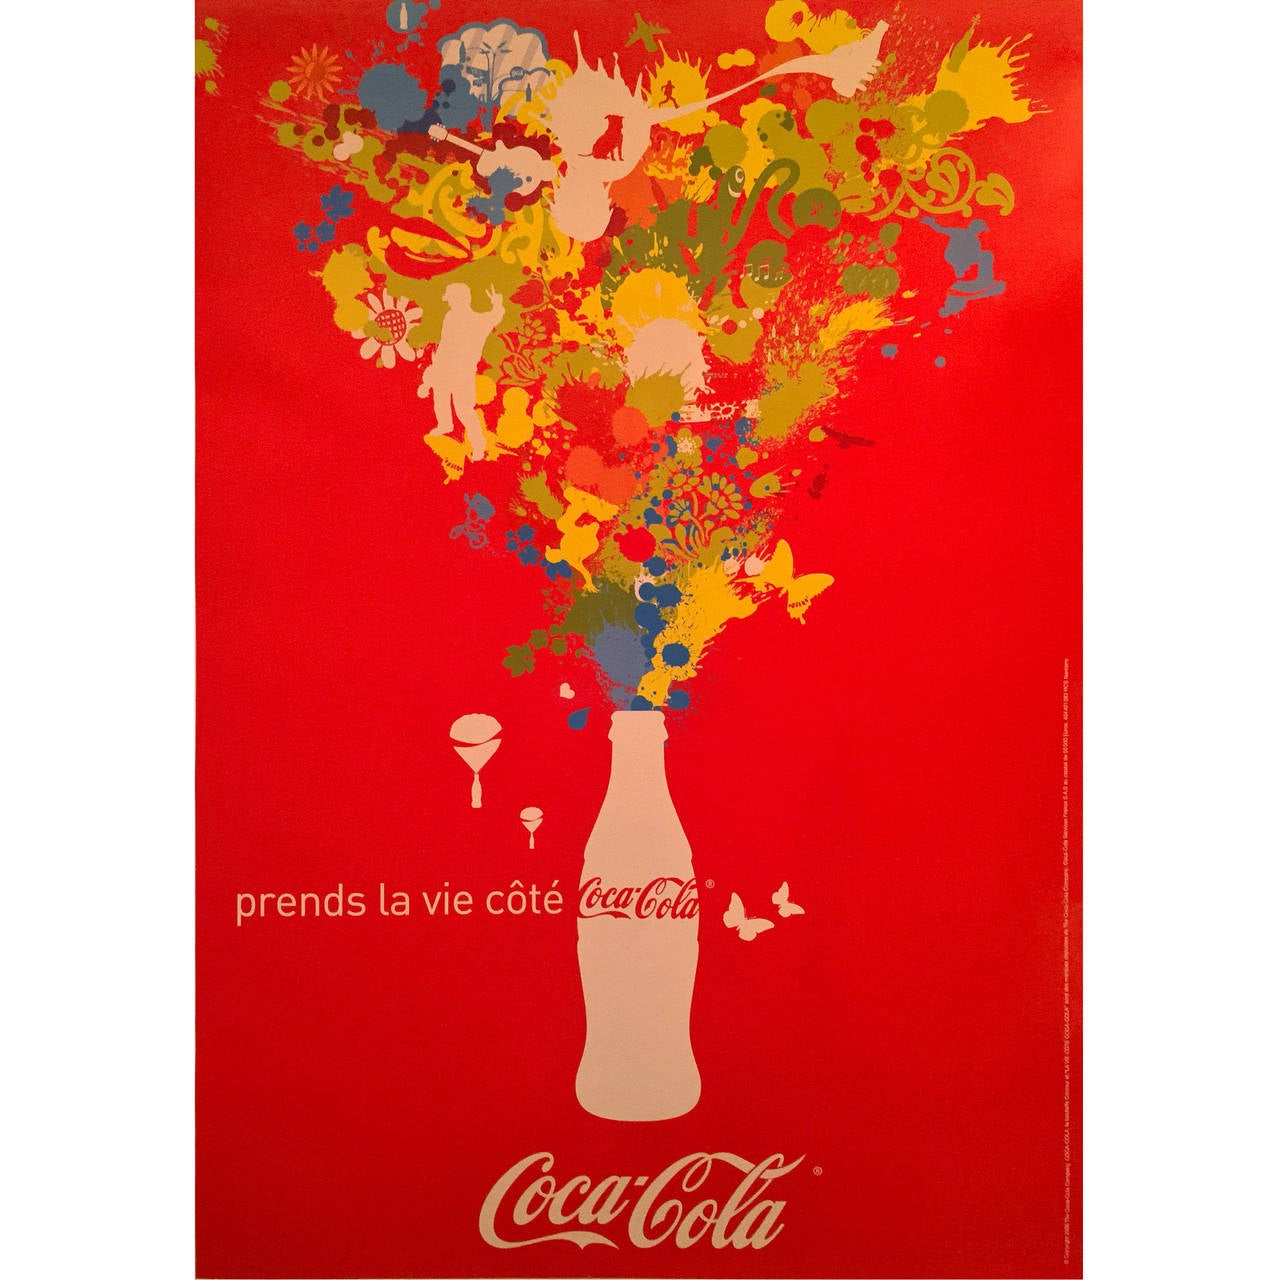 advertising assignment coca cola advertisement Find great deals on ebay for coca cola advertising and coca cola magazine advertising shop with confidence.